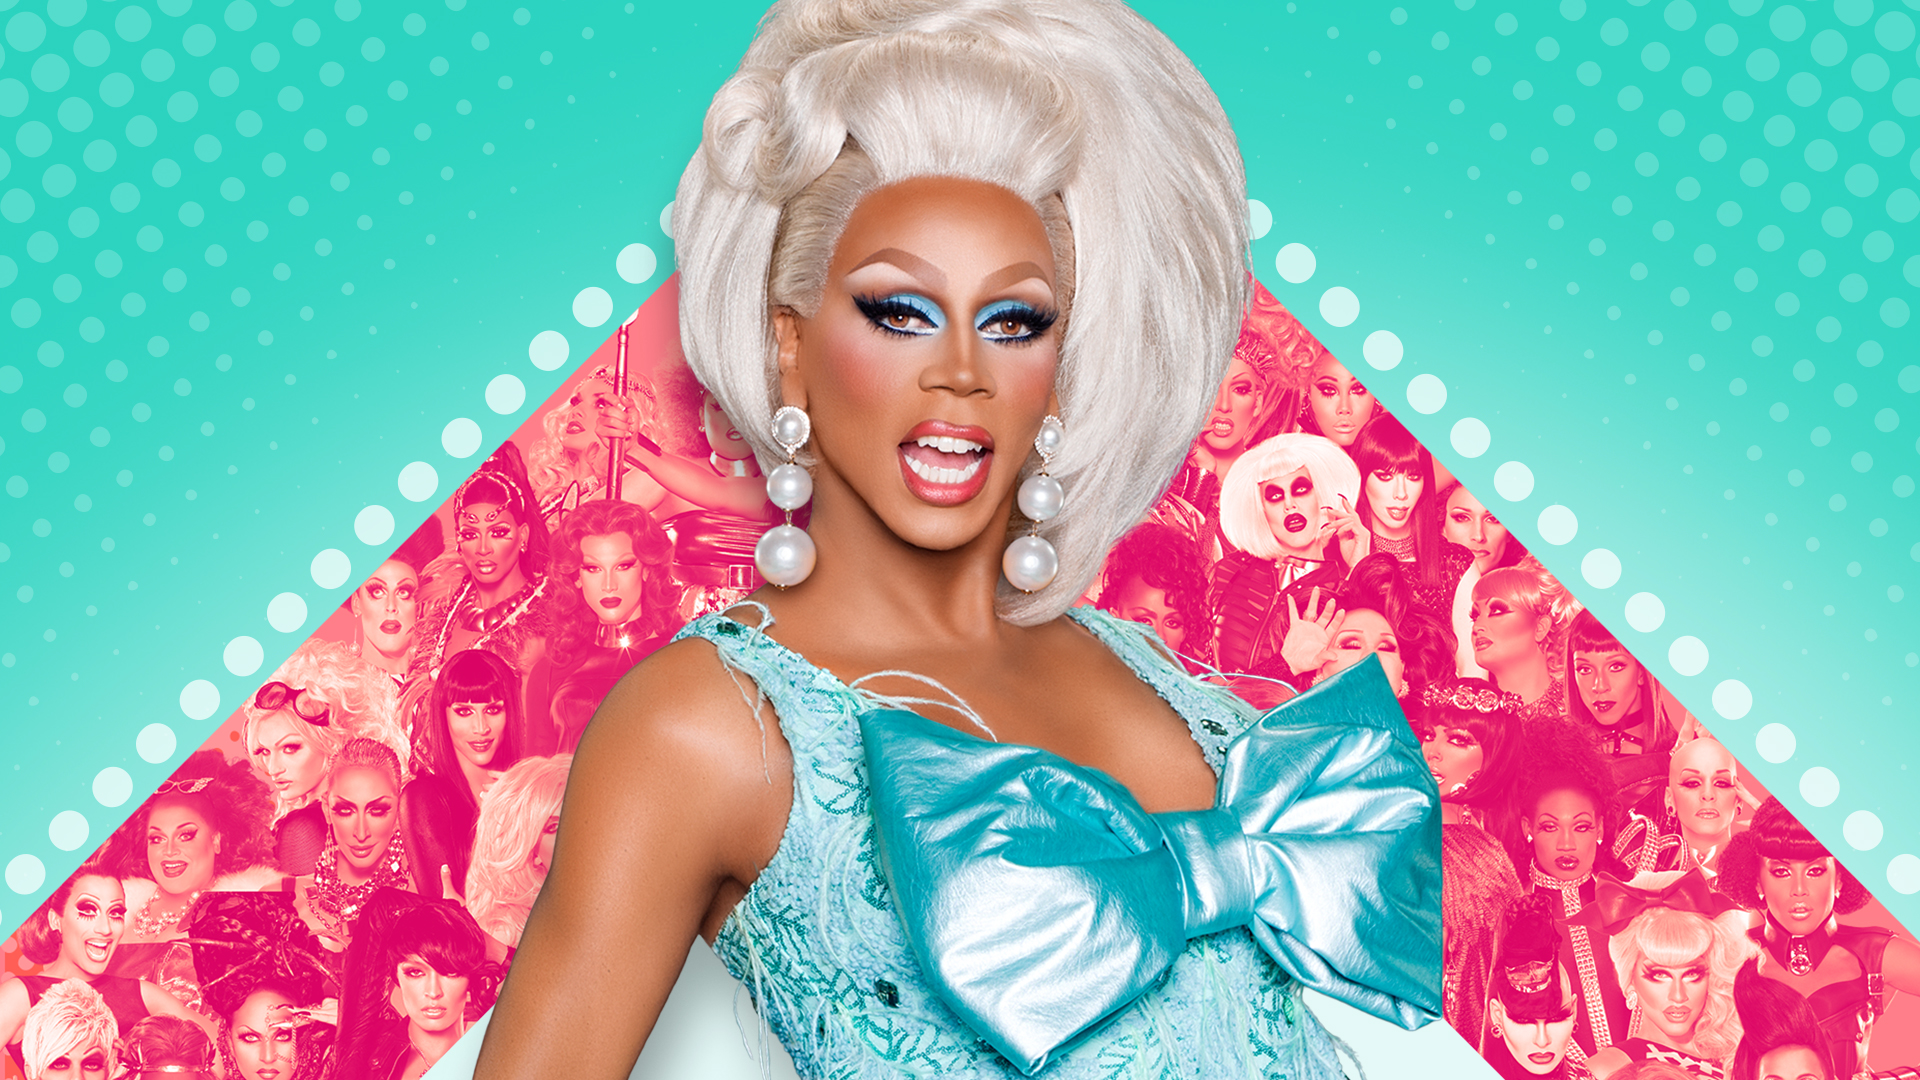 ru paul The Essential Guide to Finally Starting RuPauls Drag Race